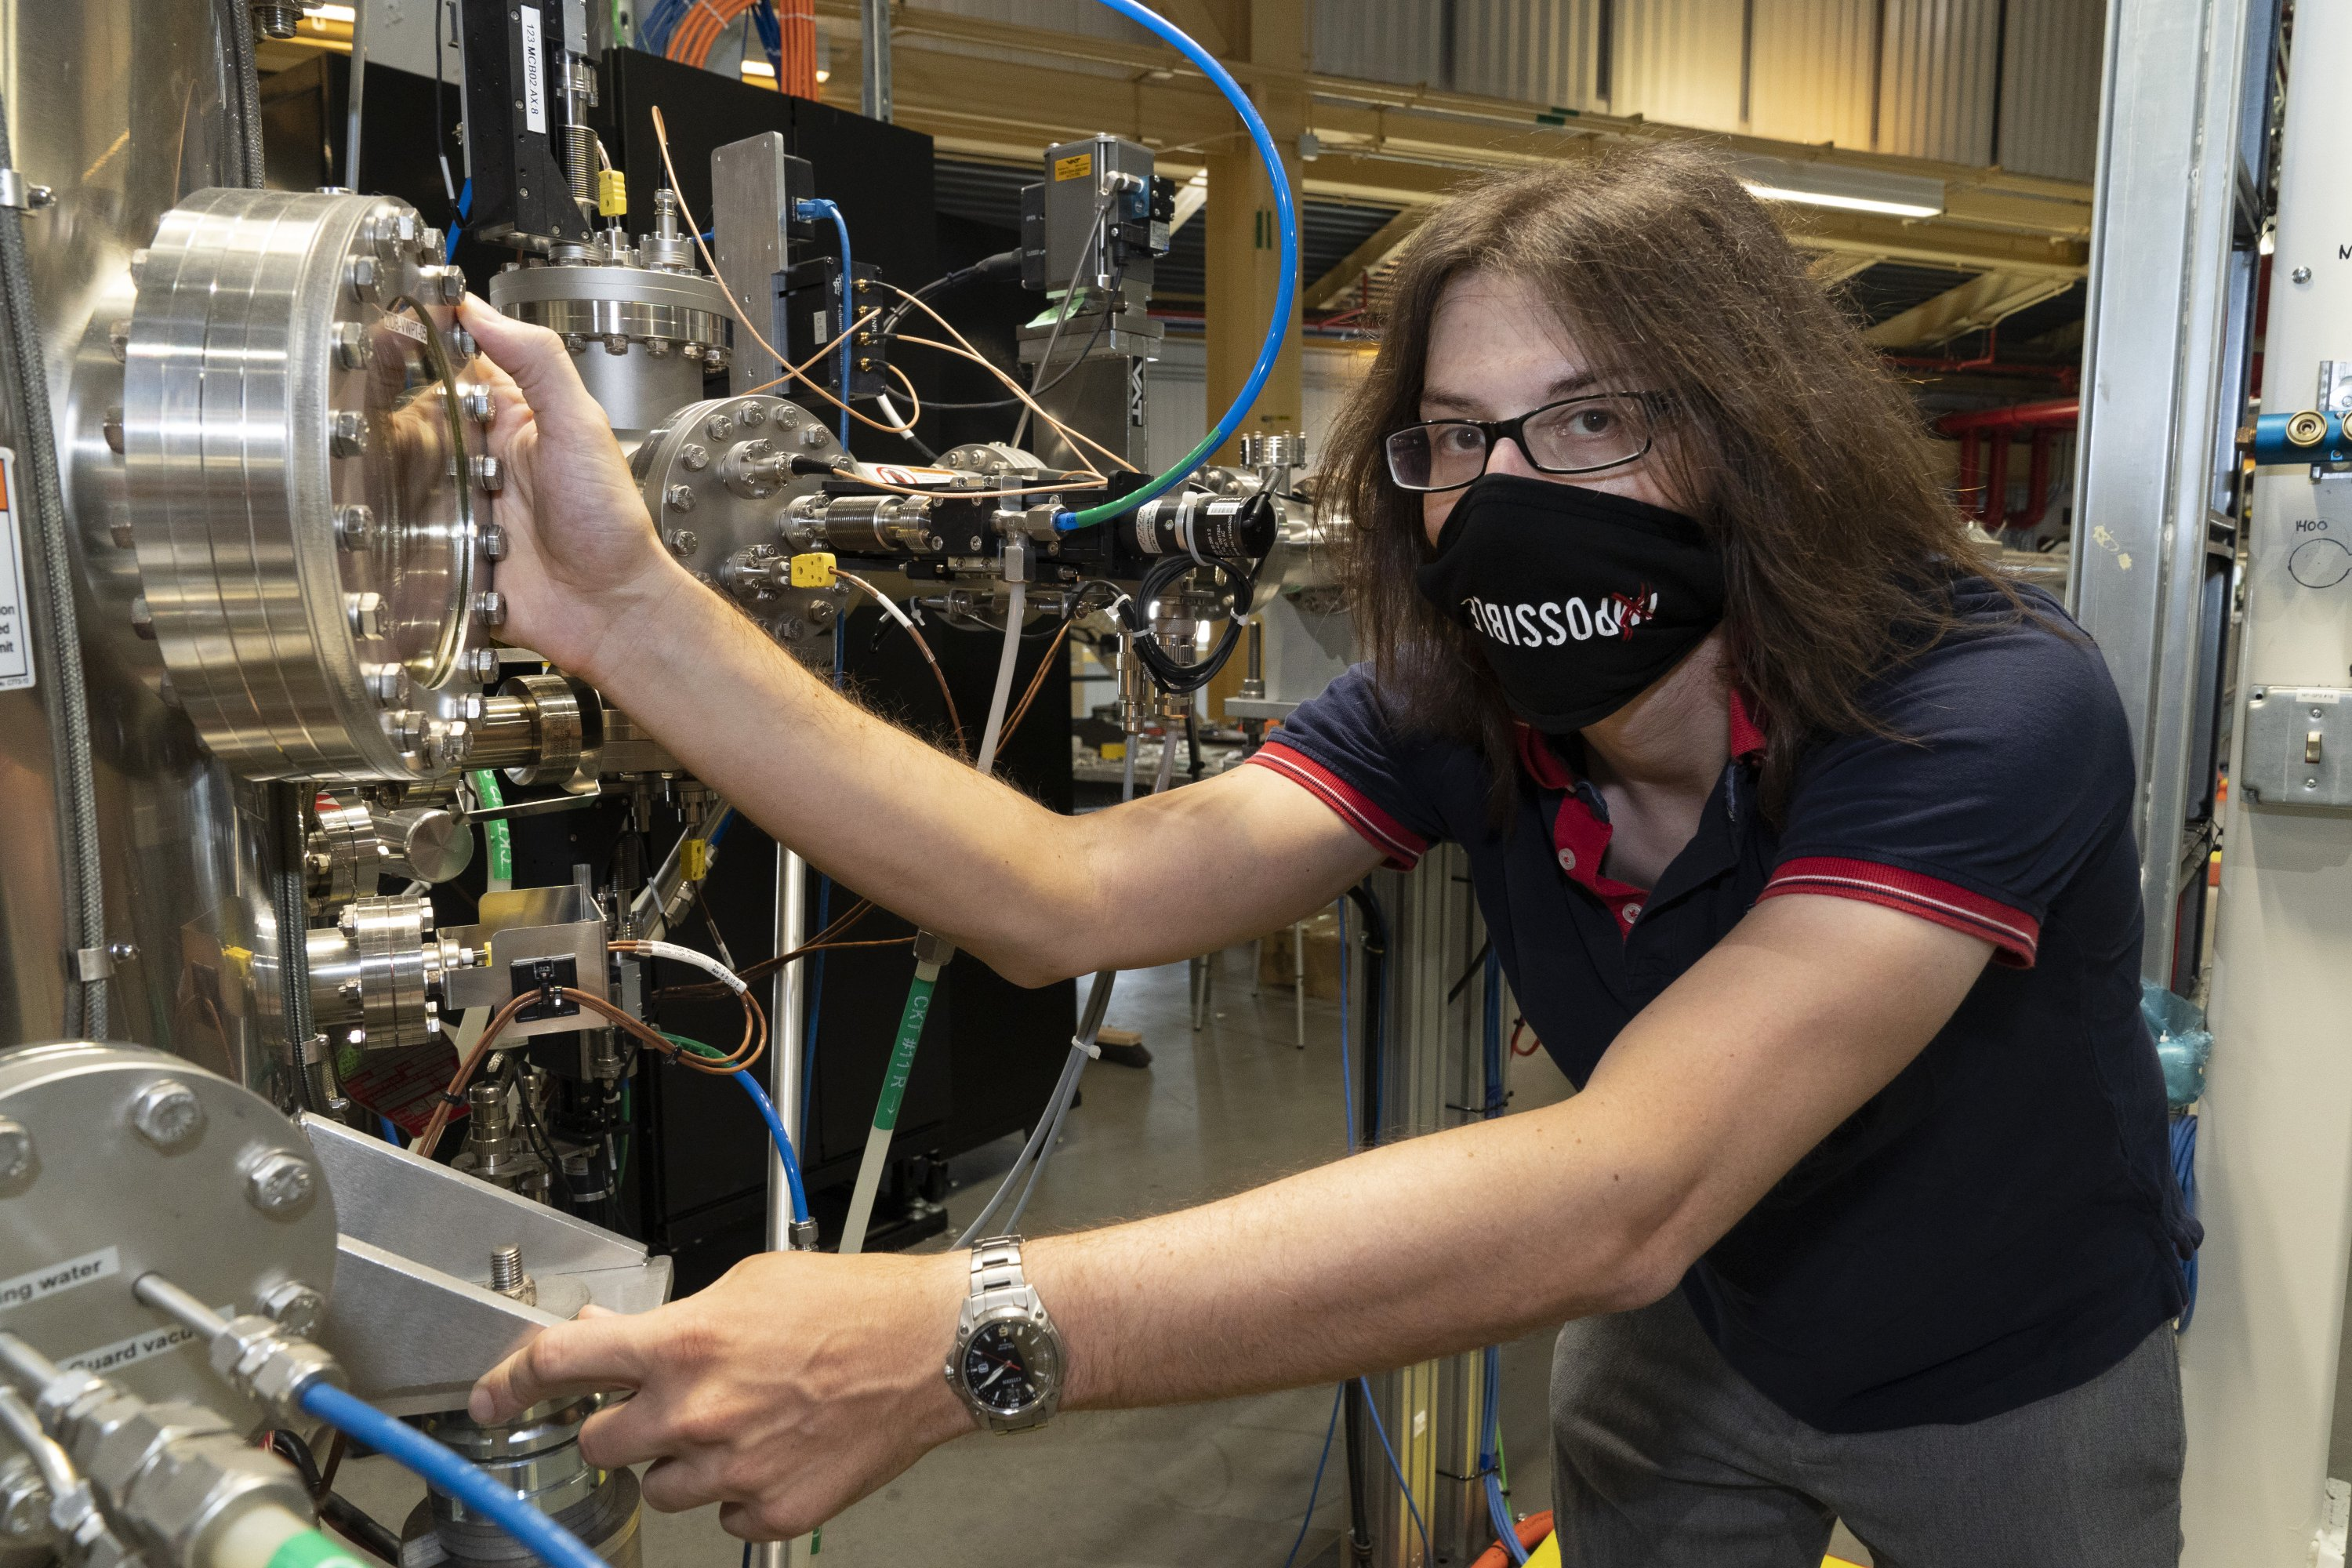 Physicists uncover secrets of world's thinnest superconductor